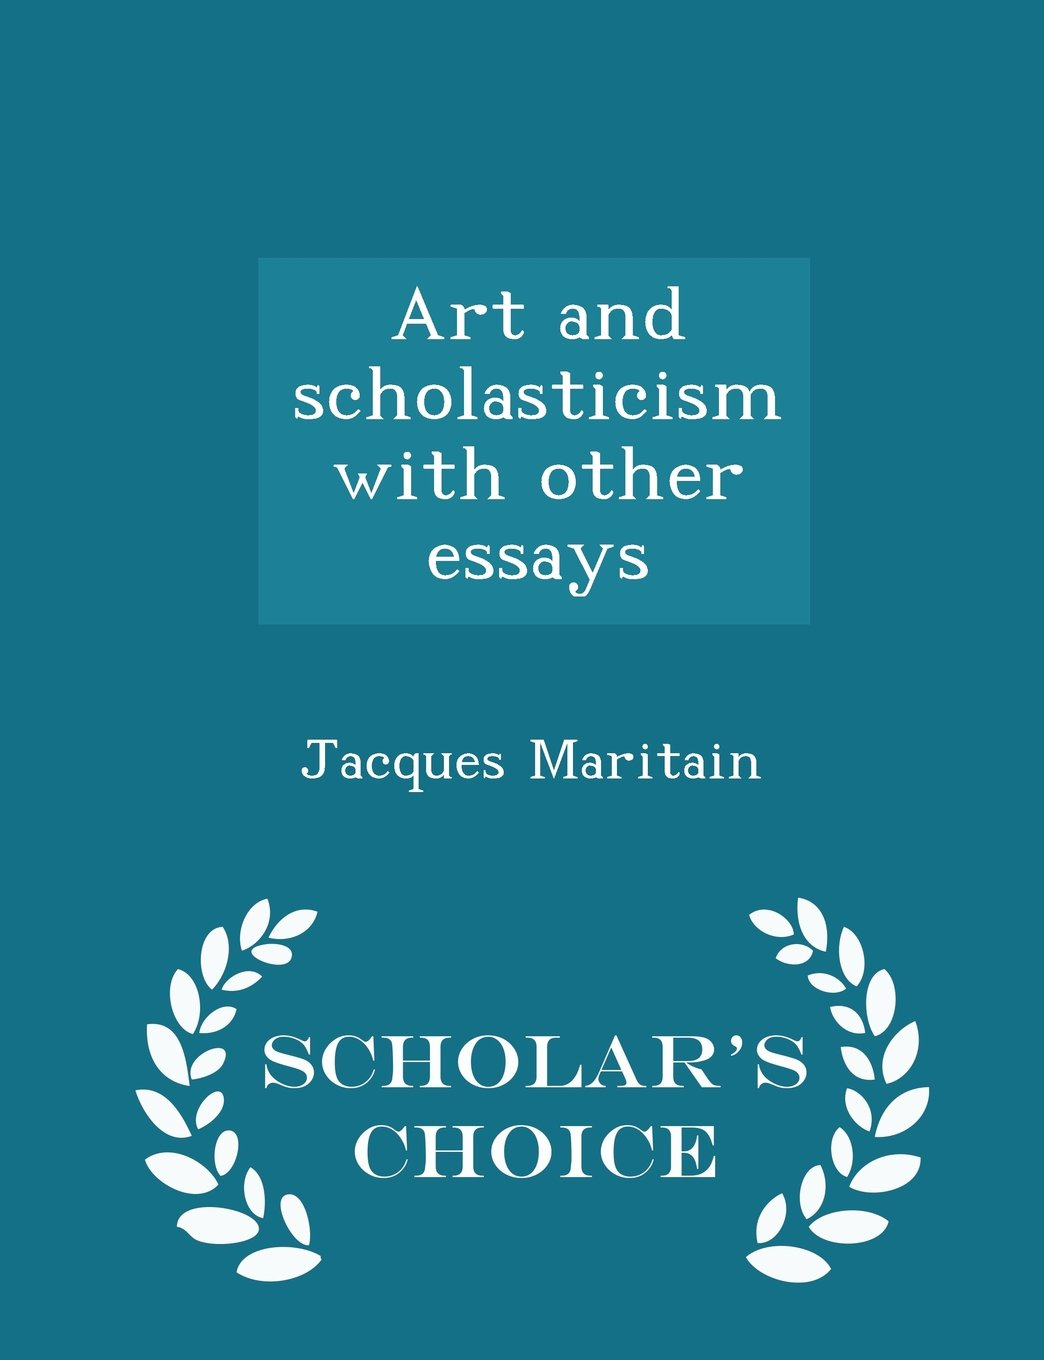 008 Essay Example Art And Scholasticism With Other Essays 61jp7 Impressive Full